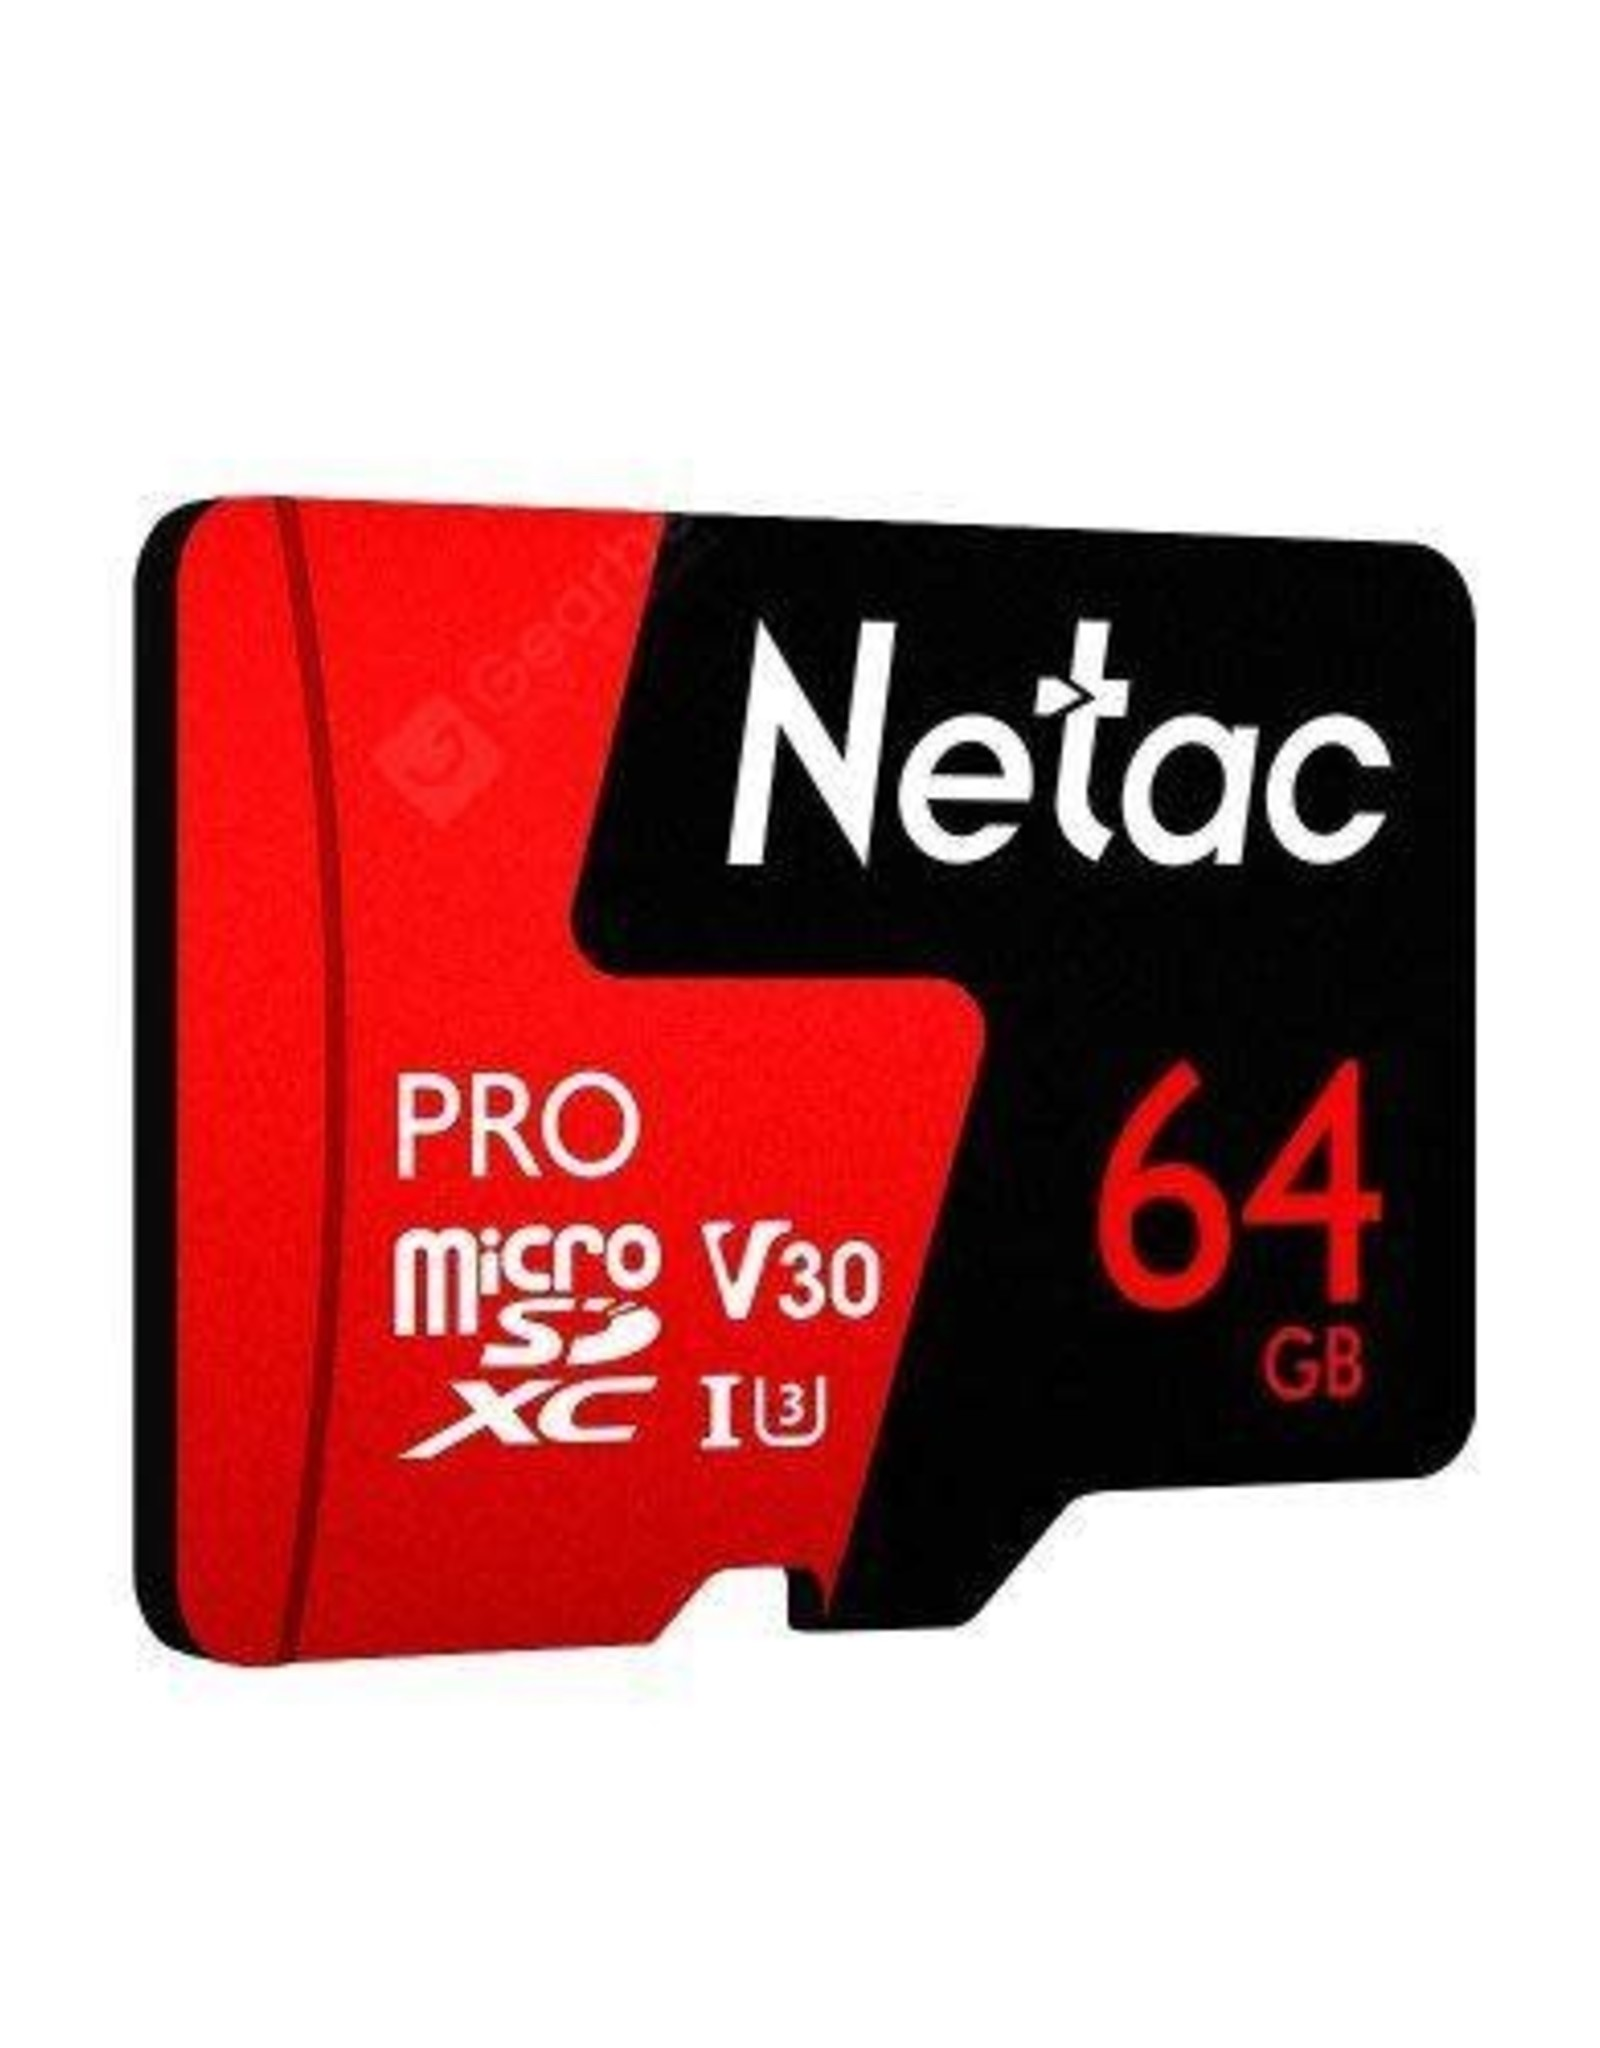 Netac 64GB Micro SD Memory Card, MicroSDHC Card UHS-I, 100/30MB/s(R/W), 667X, C10, U3, A1, V30, 4K, TF Card for Camera, Smartphone, Security System, Drone, Dash Cam, Gopro, Tablet, DSLRs